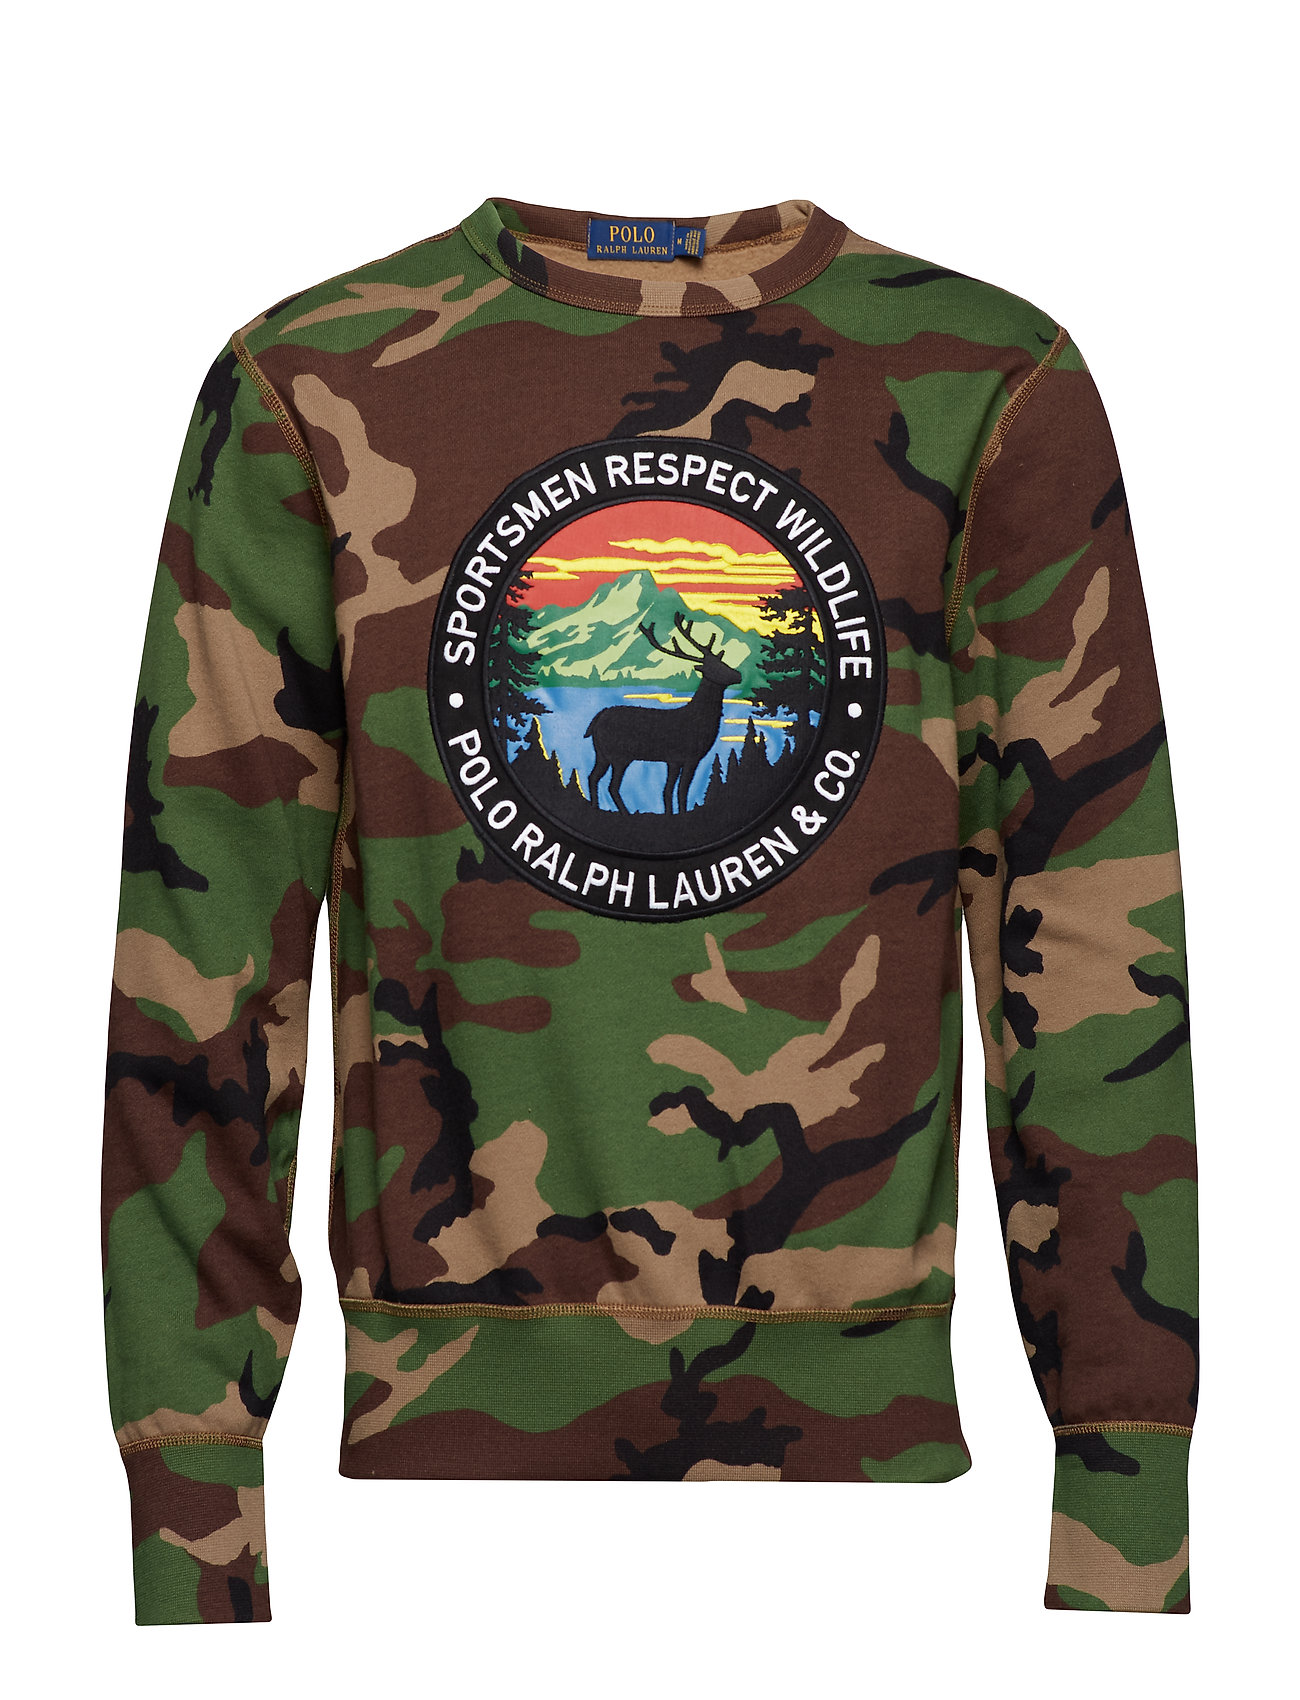 Polo Ralph Lauren Camo Cotton-Blend Sweatshirt